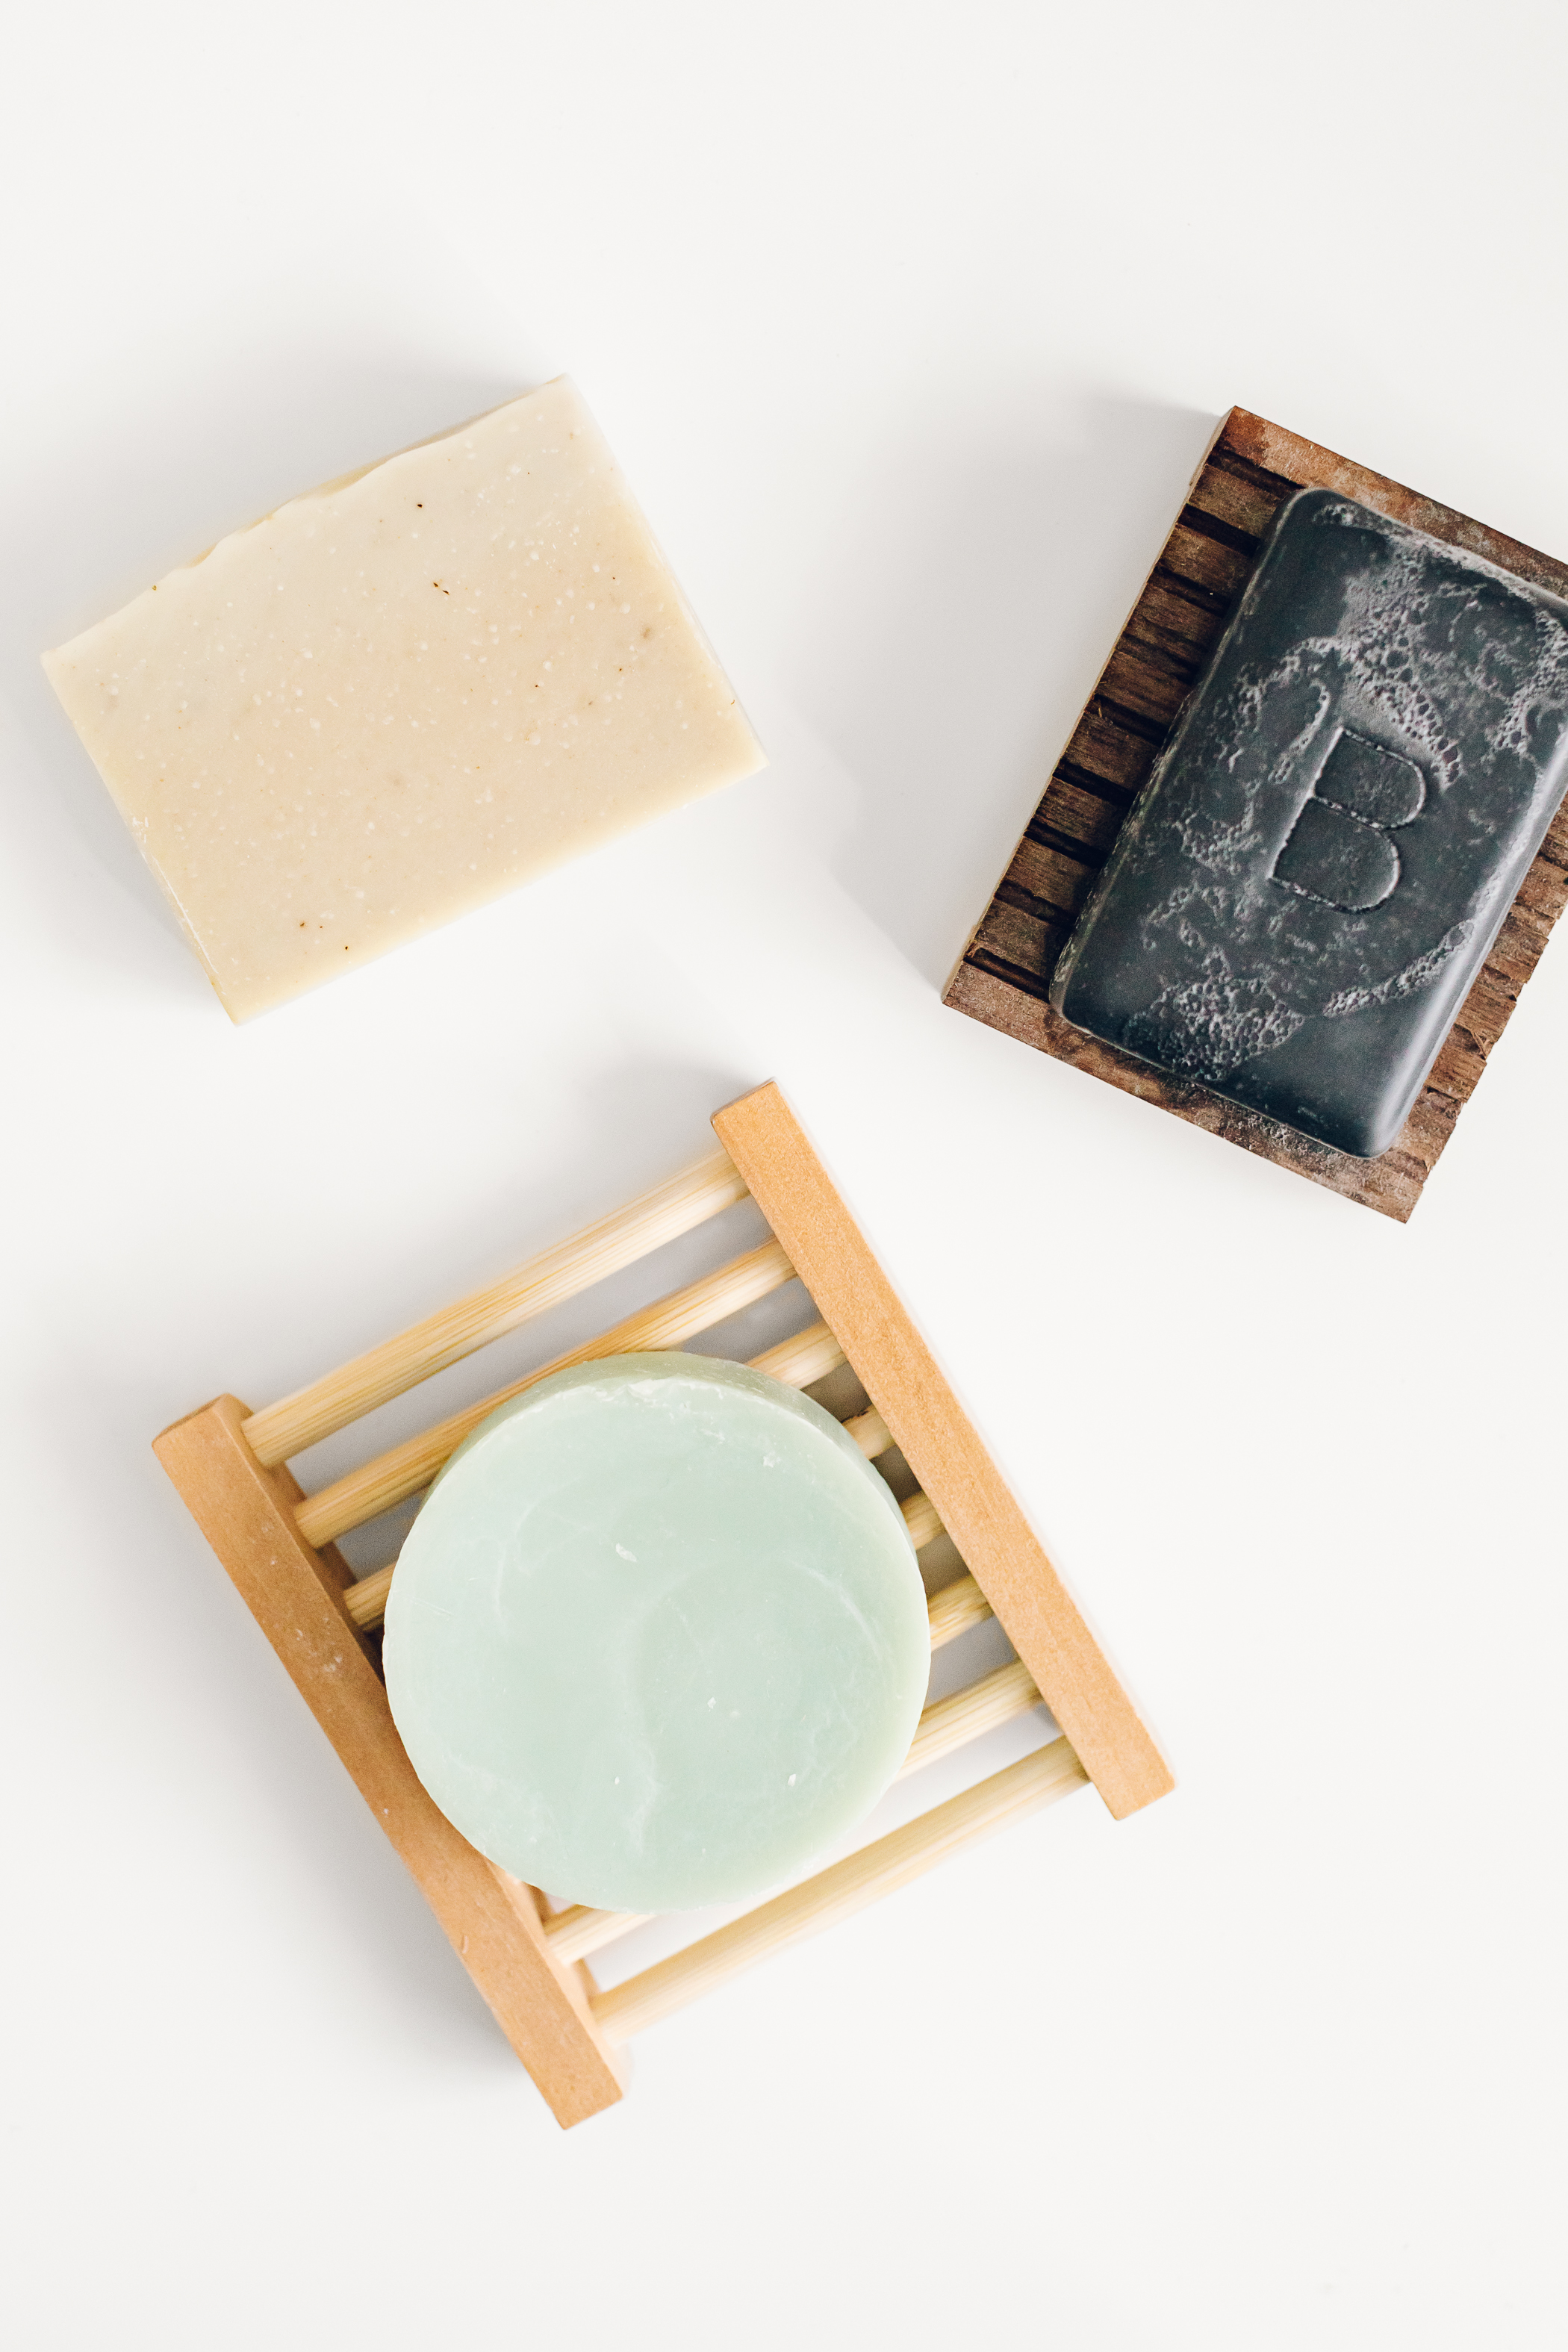 Bar Soap - We replaced our bottles of hand soap, face wash, and body wash with bar soap. This was such a simple swap to do! When the soap is gone, it just disappears, no contribution to the landfill necessary.Bar soap typically comes with little to no packaging - but make sure to look for bars that are not wrapped in plastic.We use hand and body soaps from our local market, and Beauty Counter's charcoal bar soap for our faces.